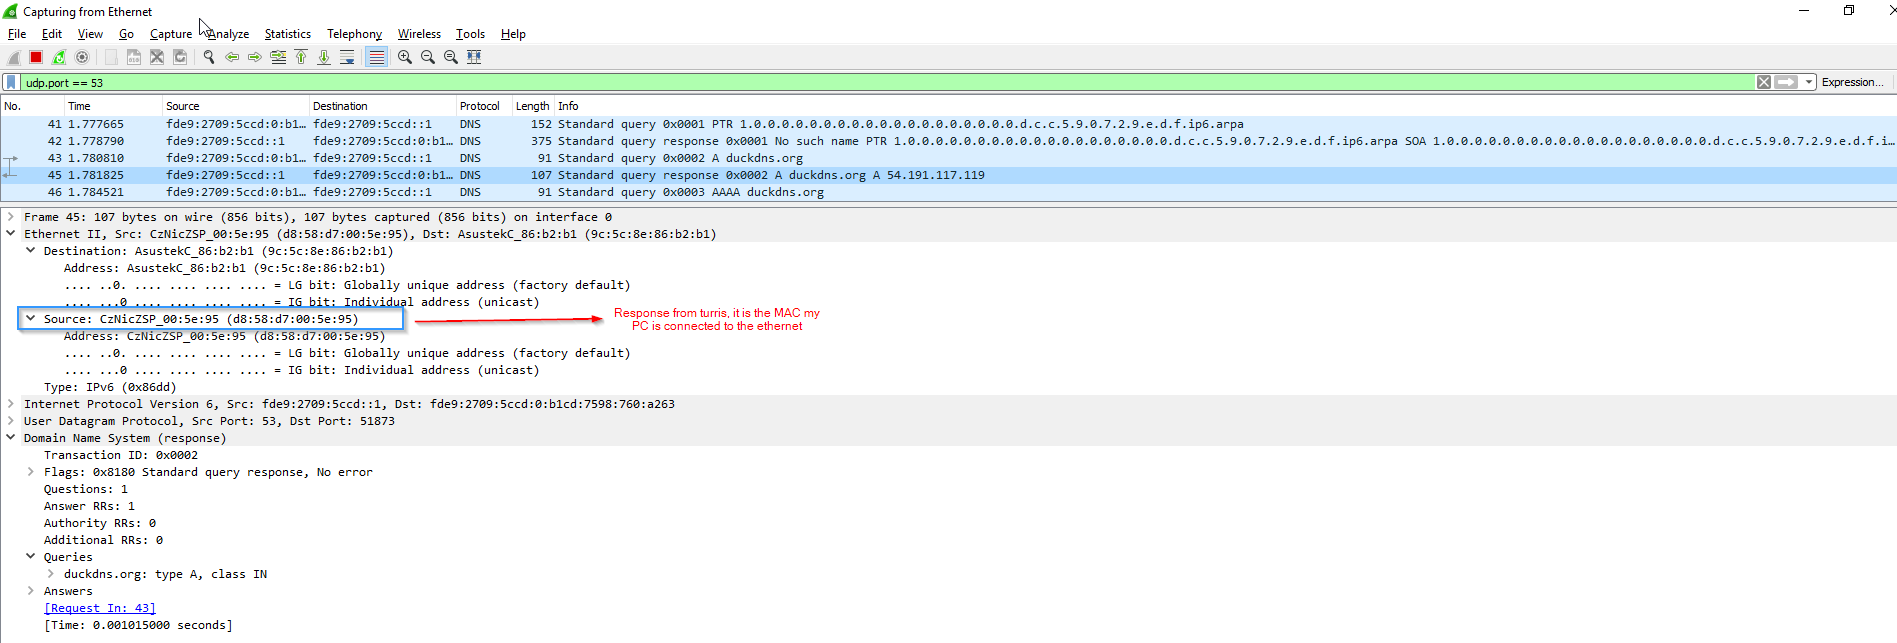 DNS on omnia not resolving duckdns org, from client works